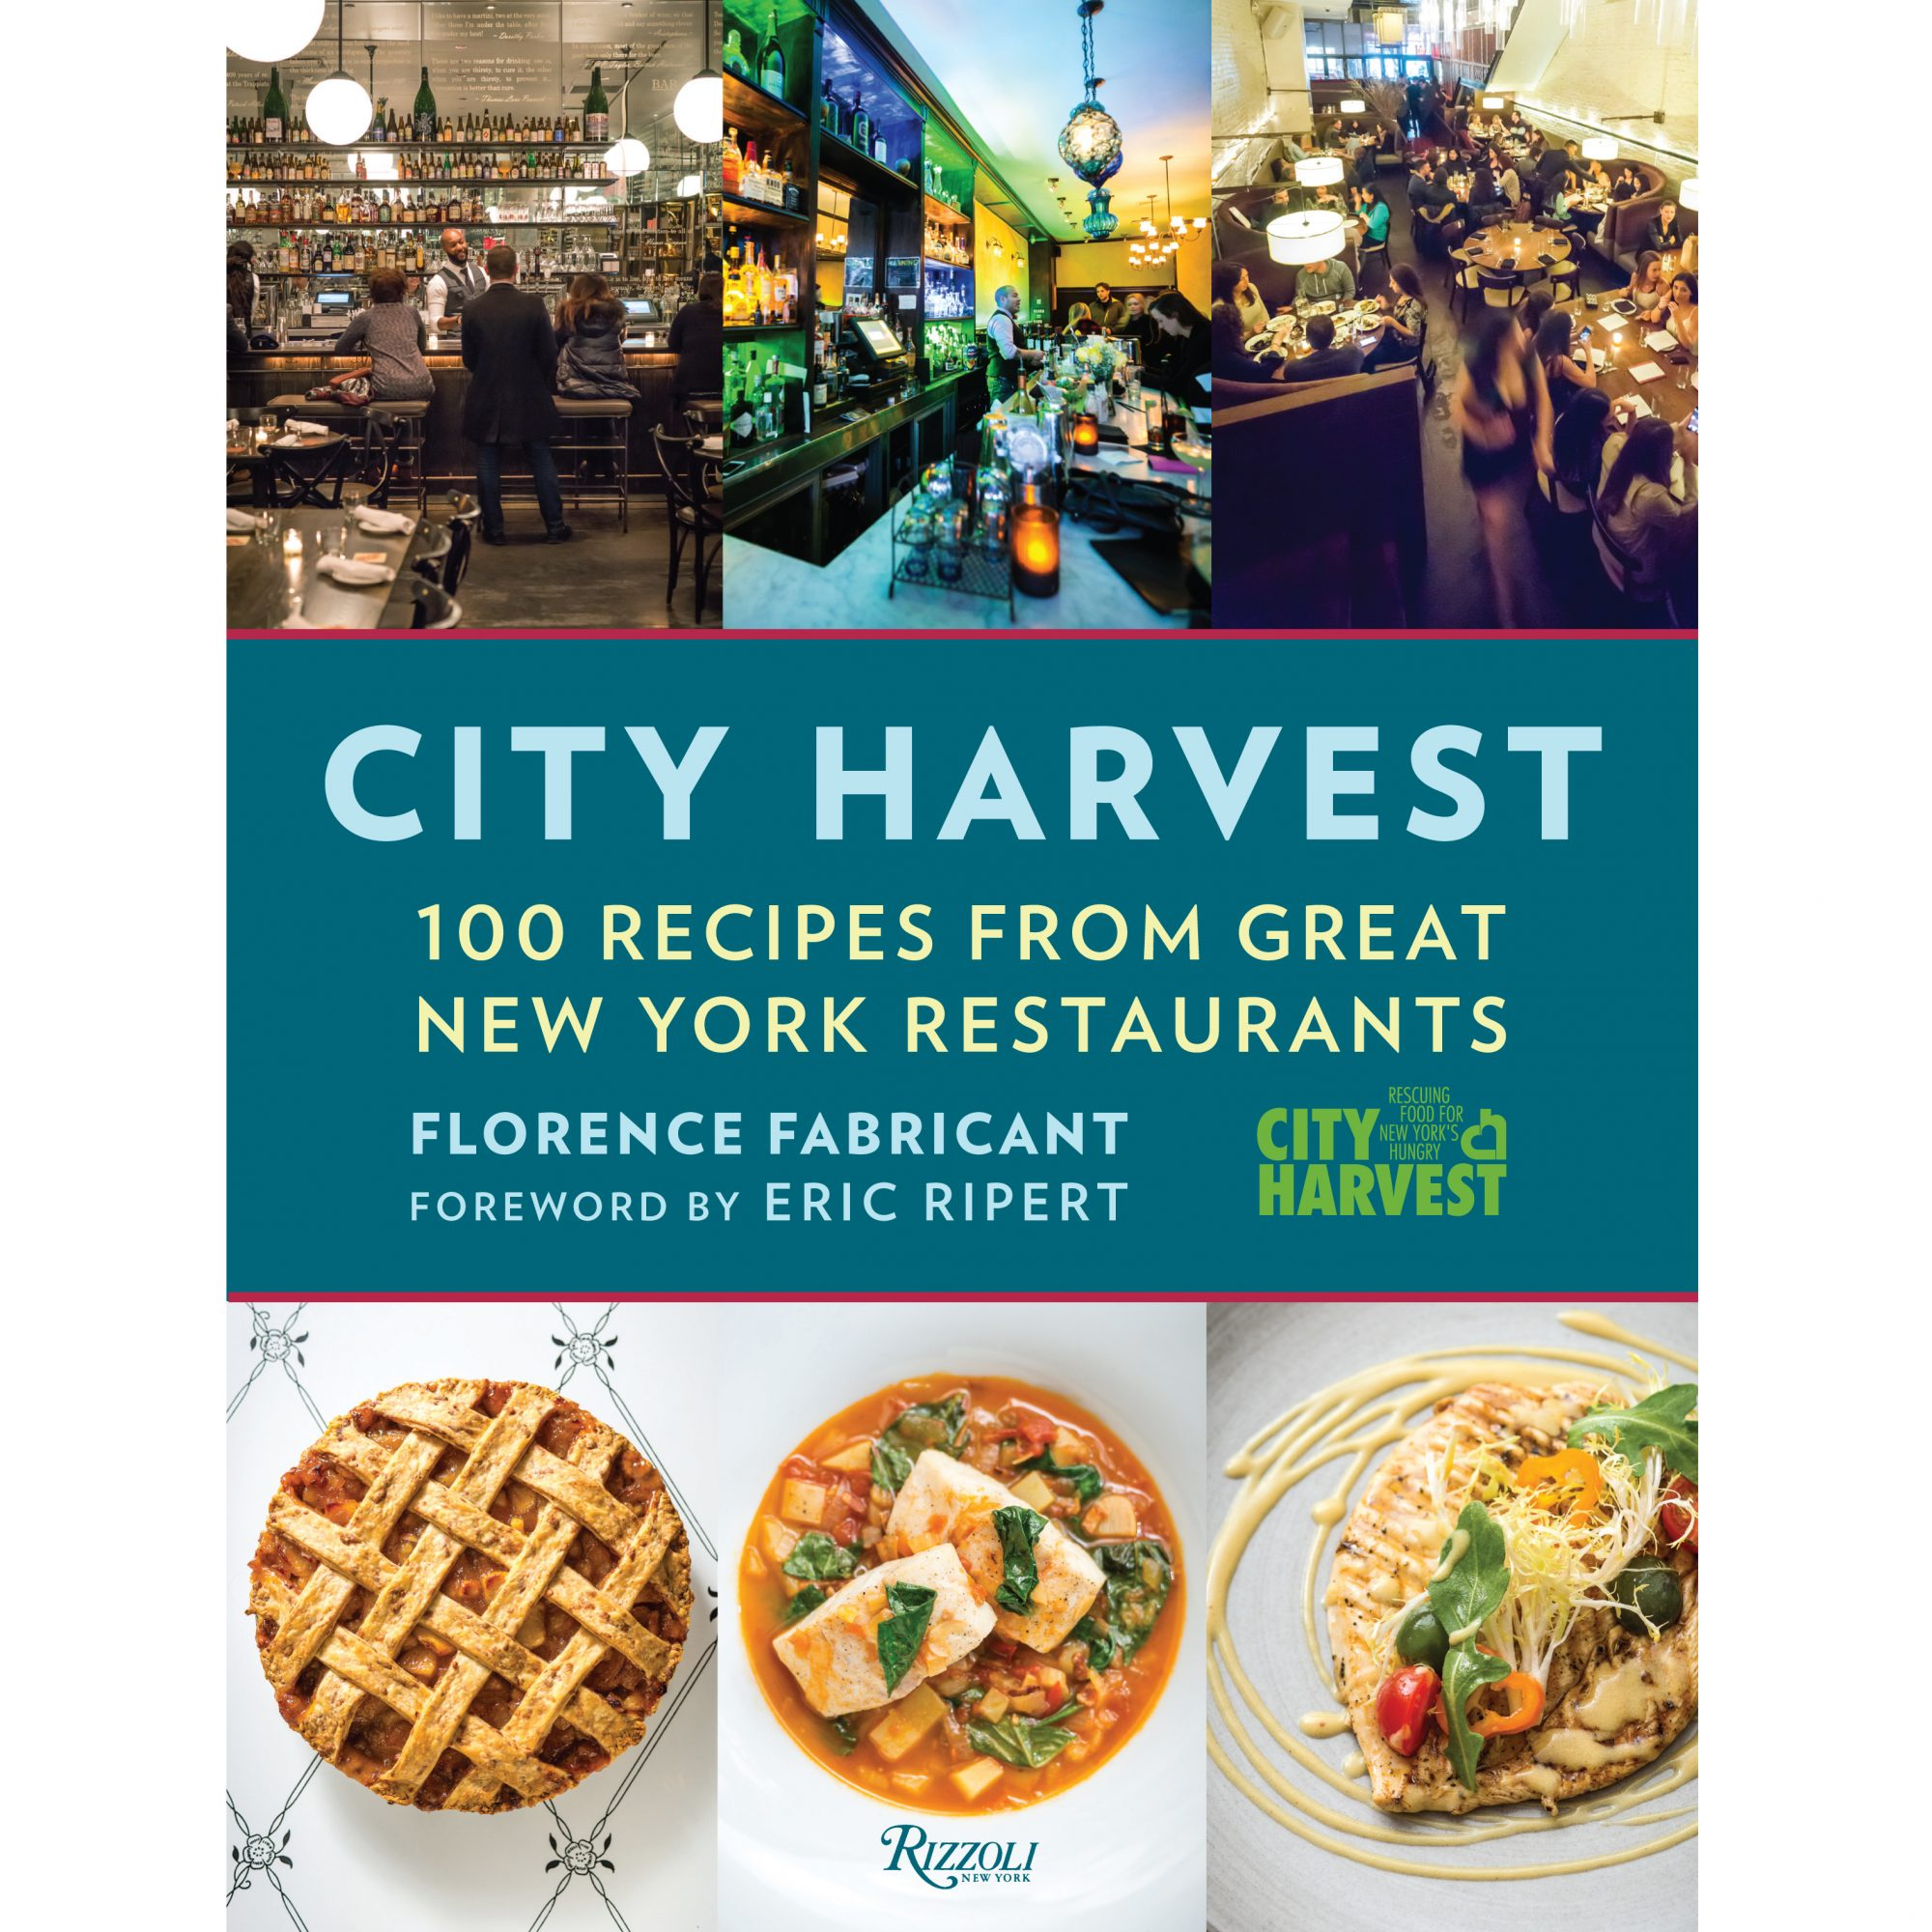 Inside city harvests brilliant new cookbook food wine city harvest cookbook forumfinder Image collections